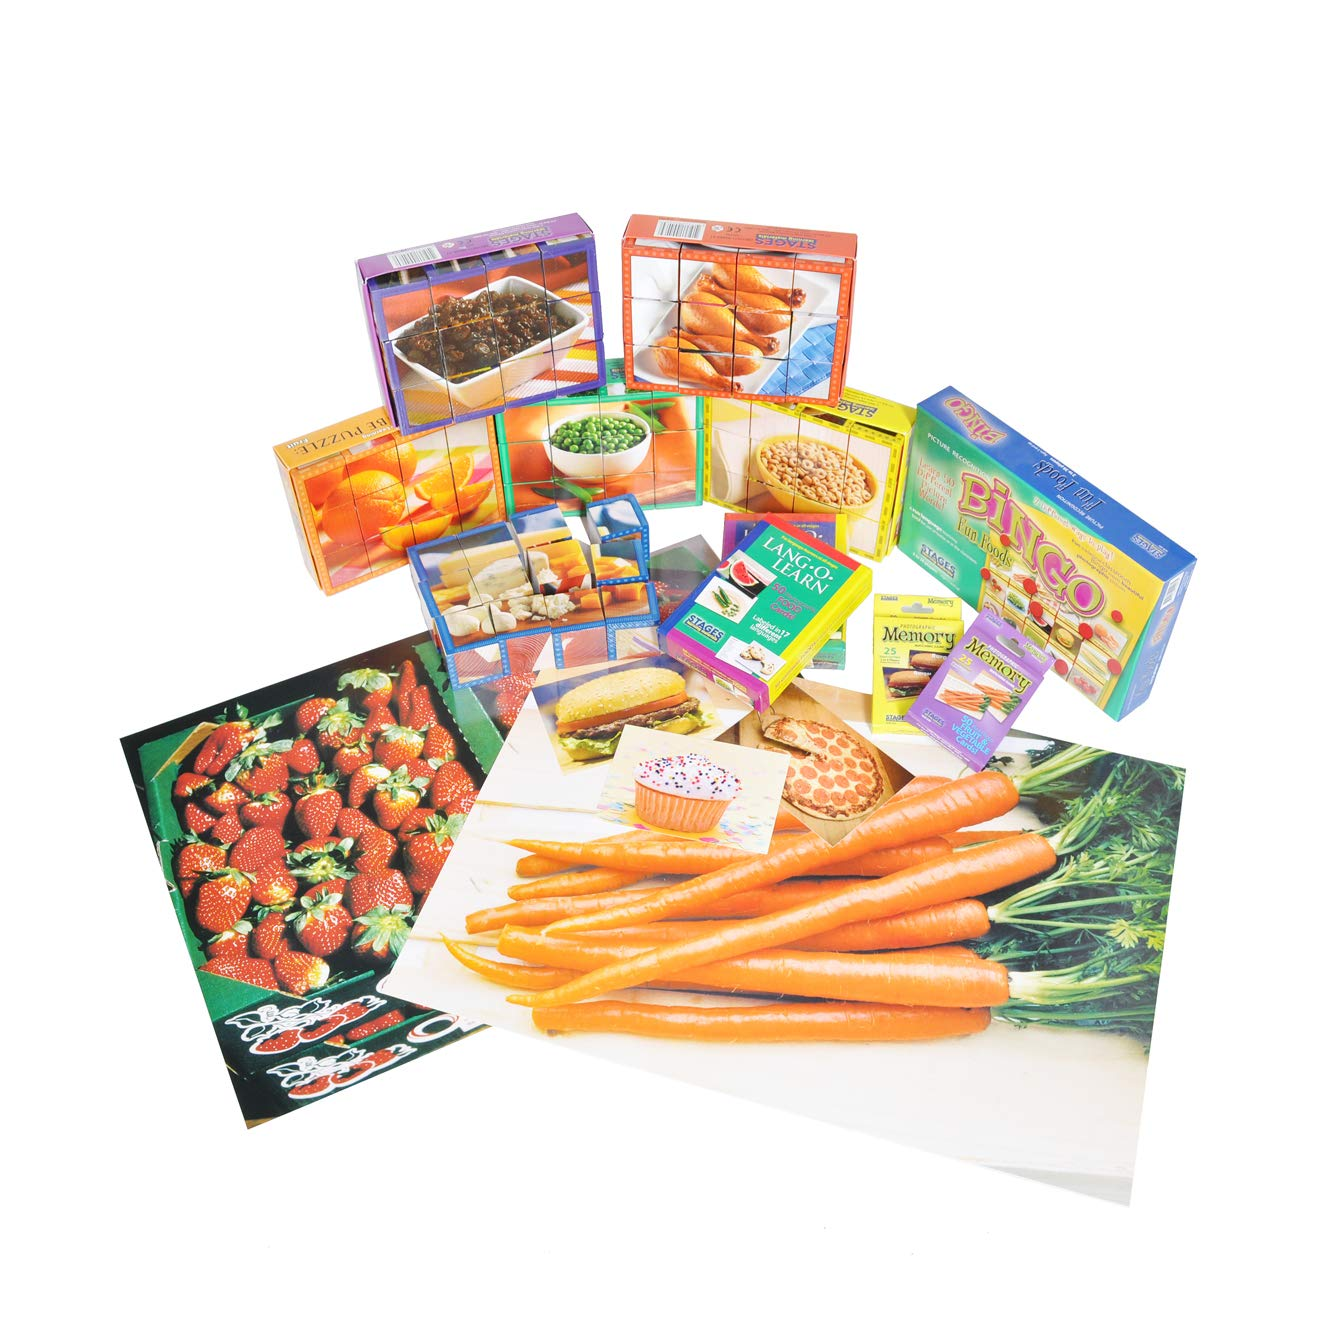 Stages Learning Materials: Nutrition Themed Kit for Preschool and Early Childhood Learning Centers